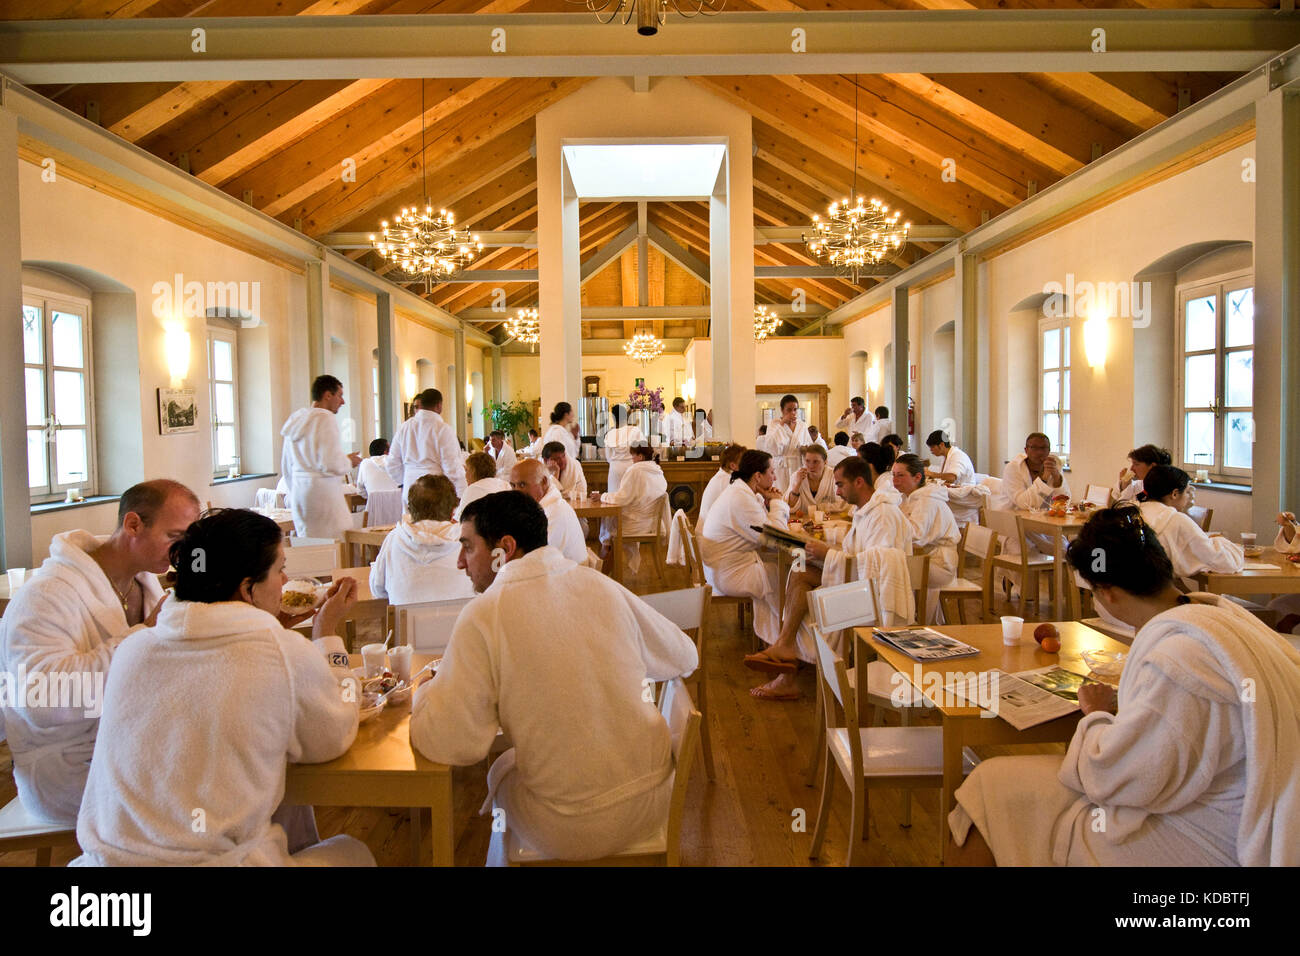 Dining Room, Pré-Saint-Didier Spa, Aosta Valley, Italy - Stock Image